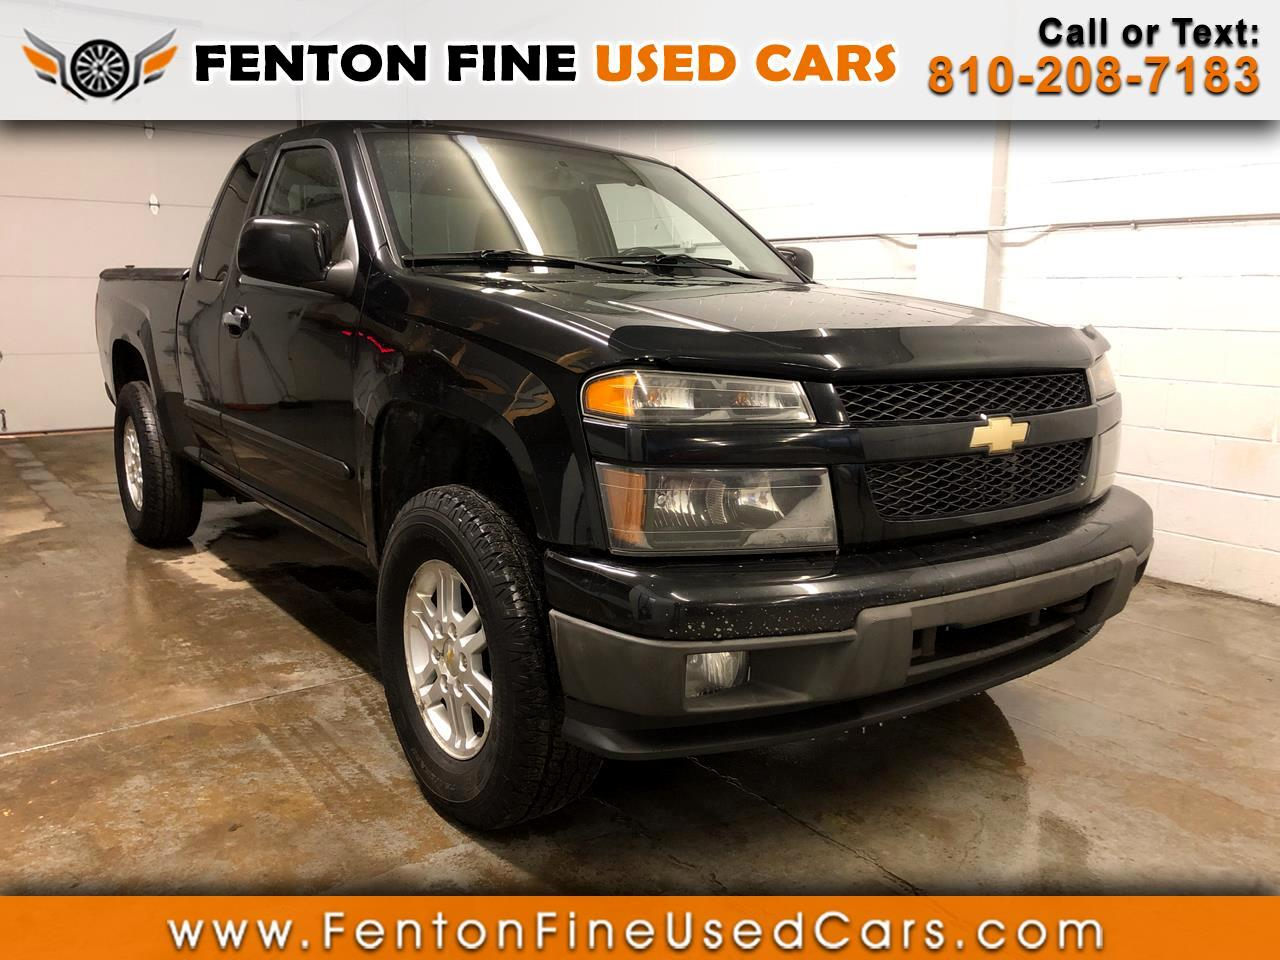 2012 Chevrolet Colorado 4WD Ext Cab LT w/1LT